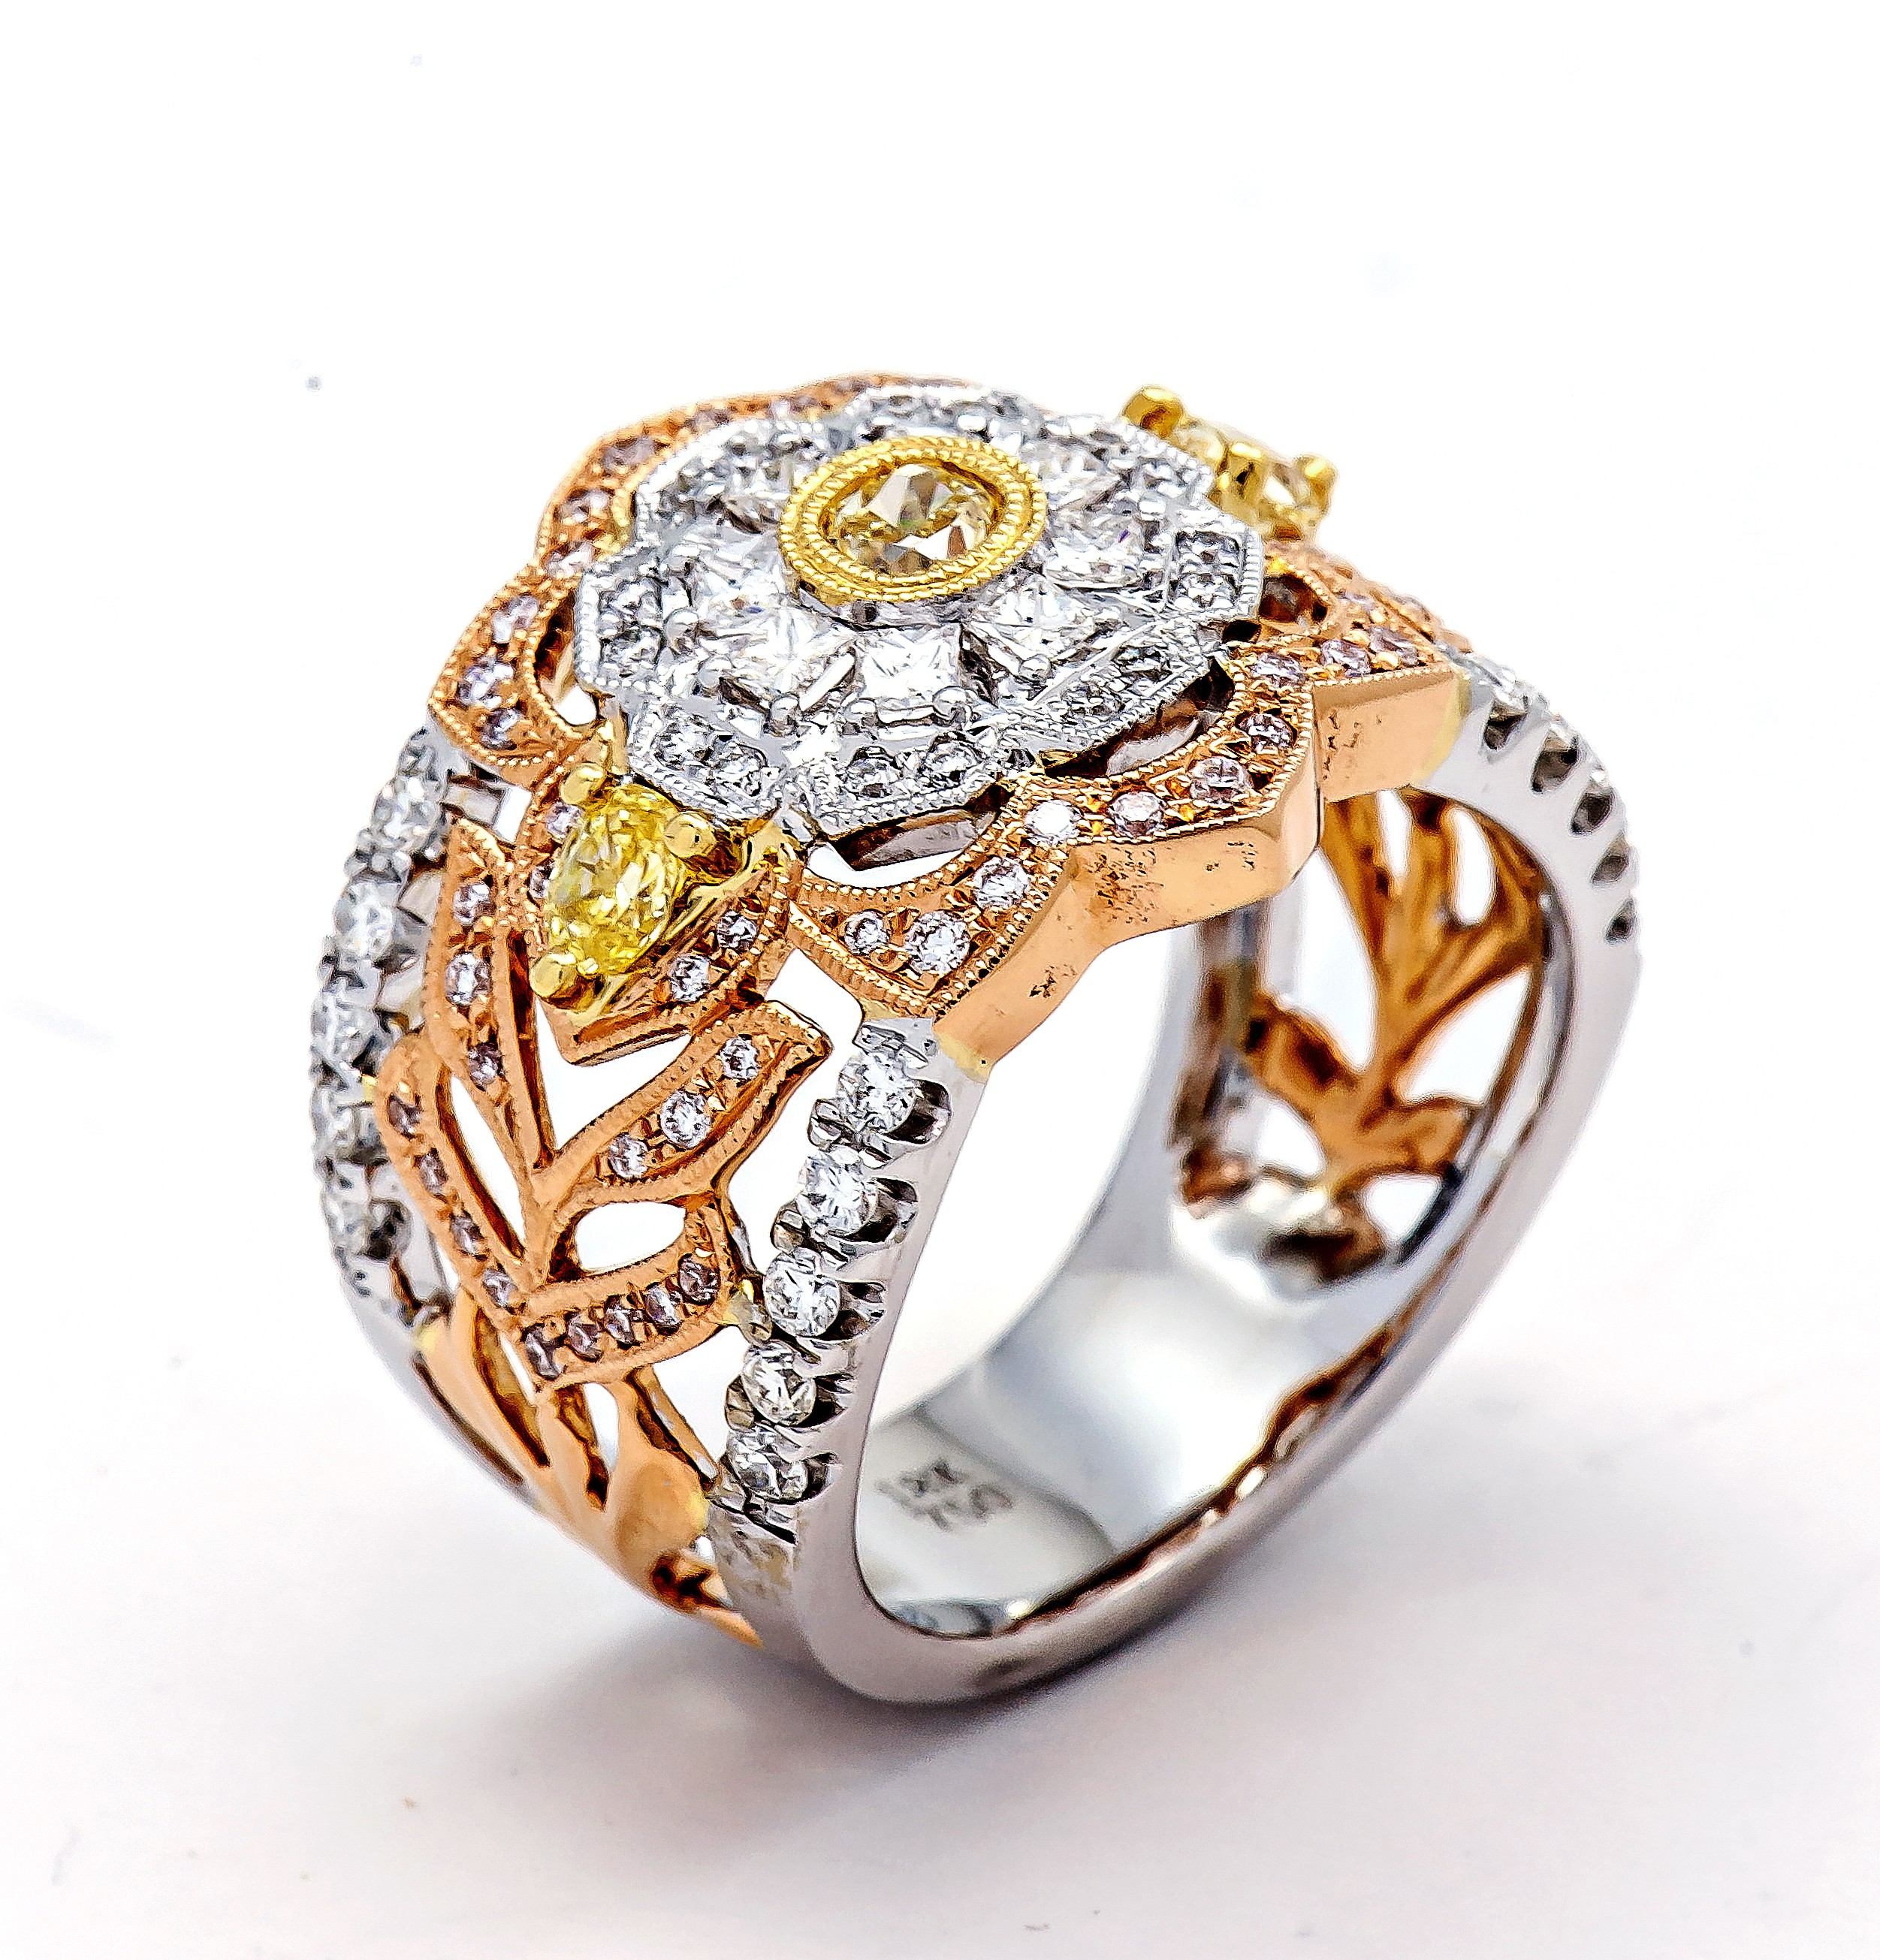 tri bands ocelle color ring products gold jewelry colored